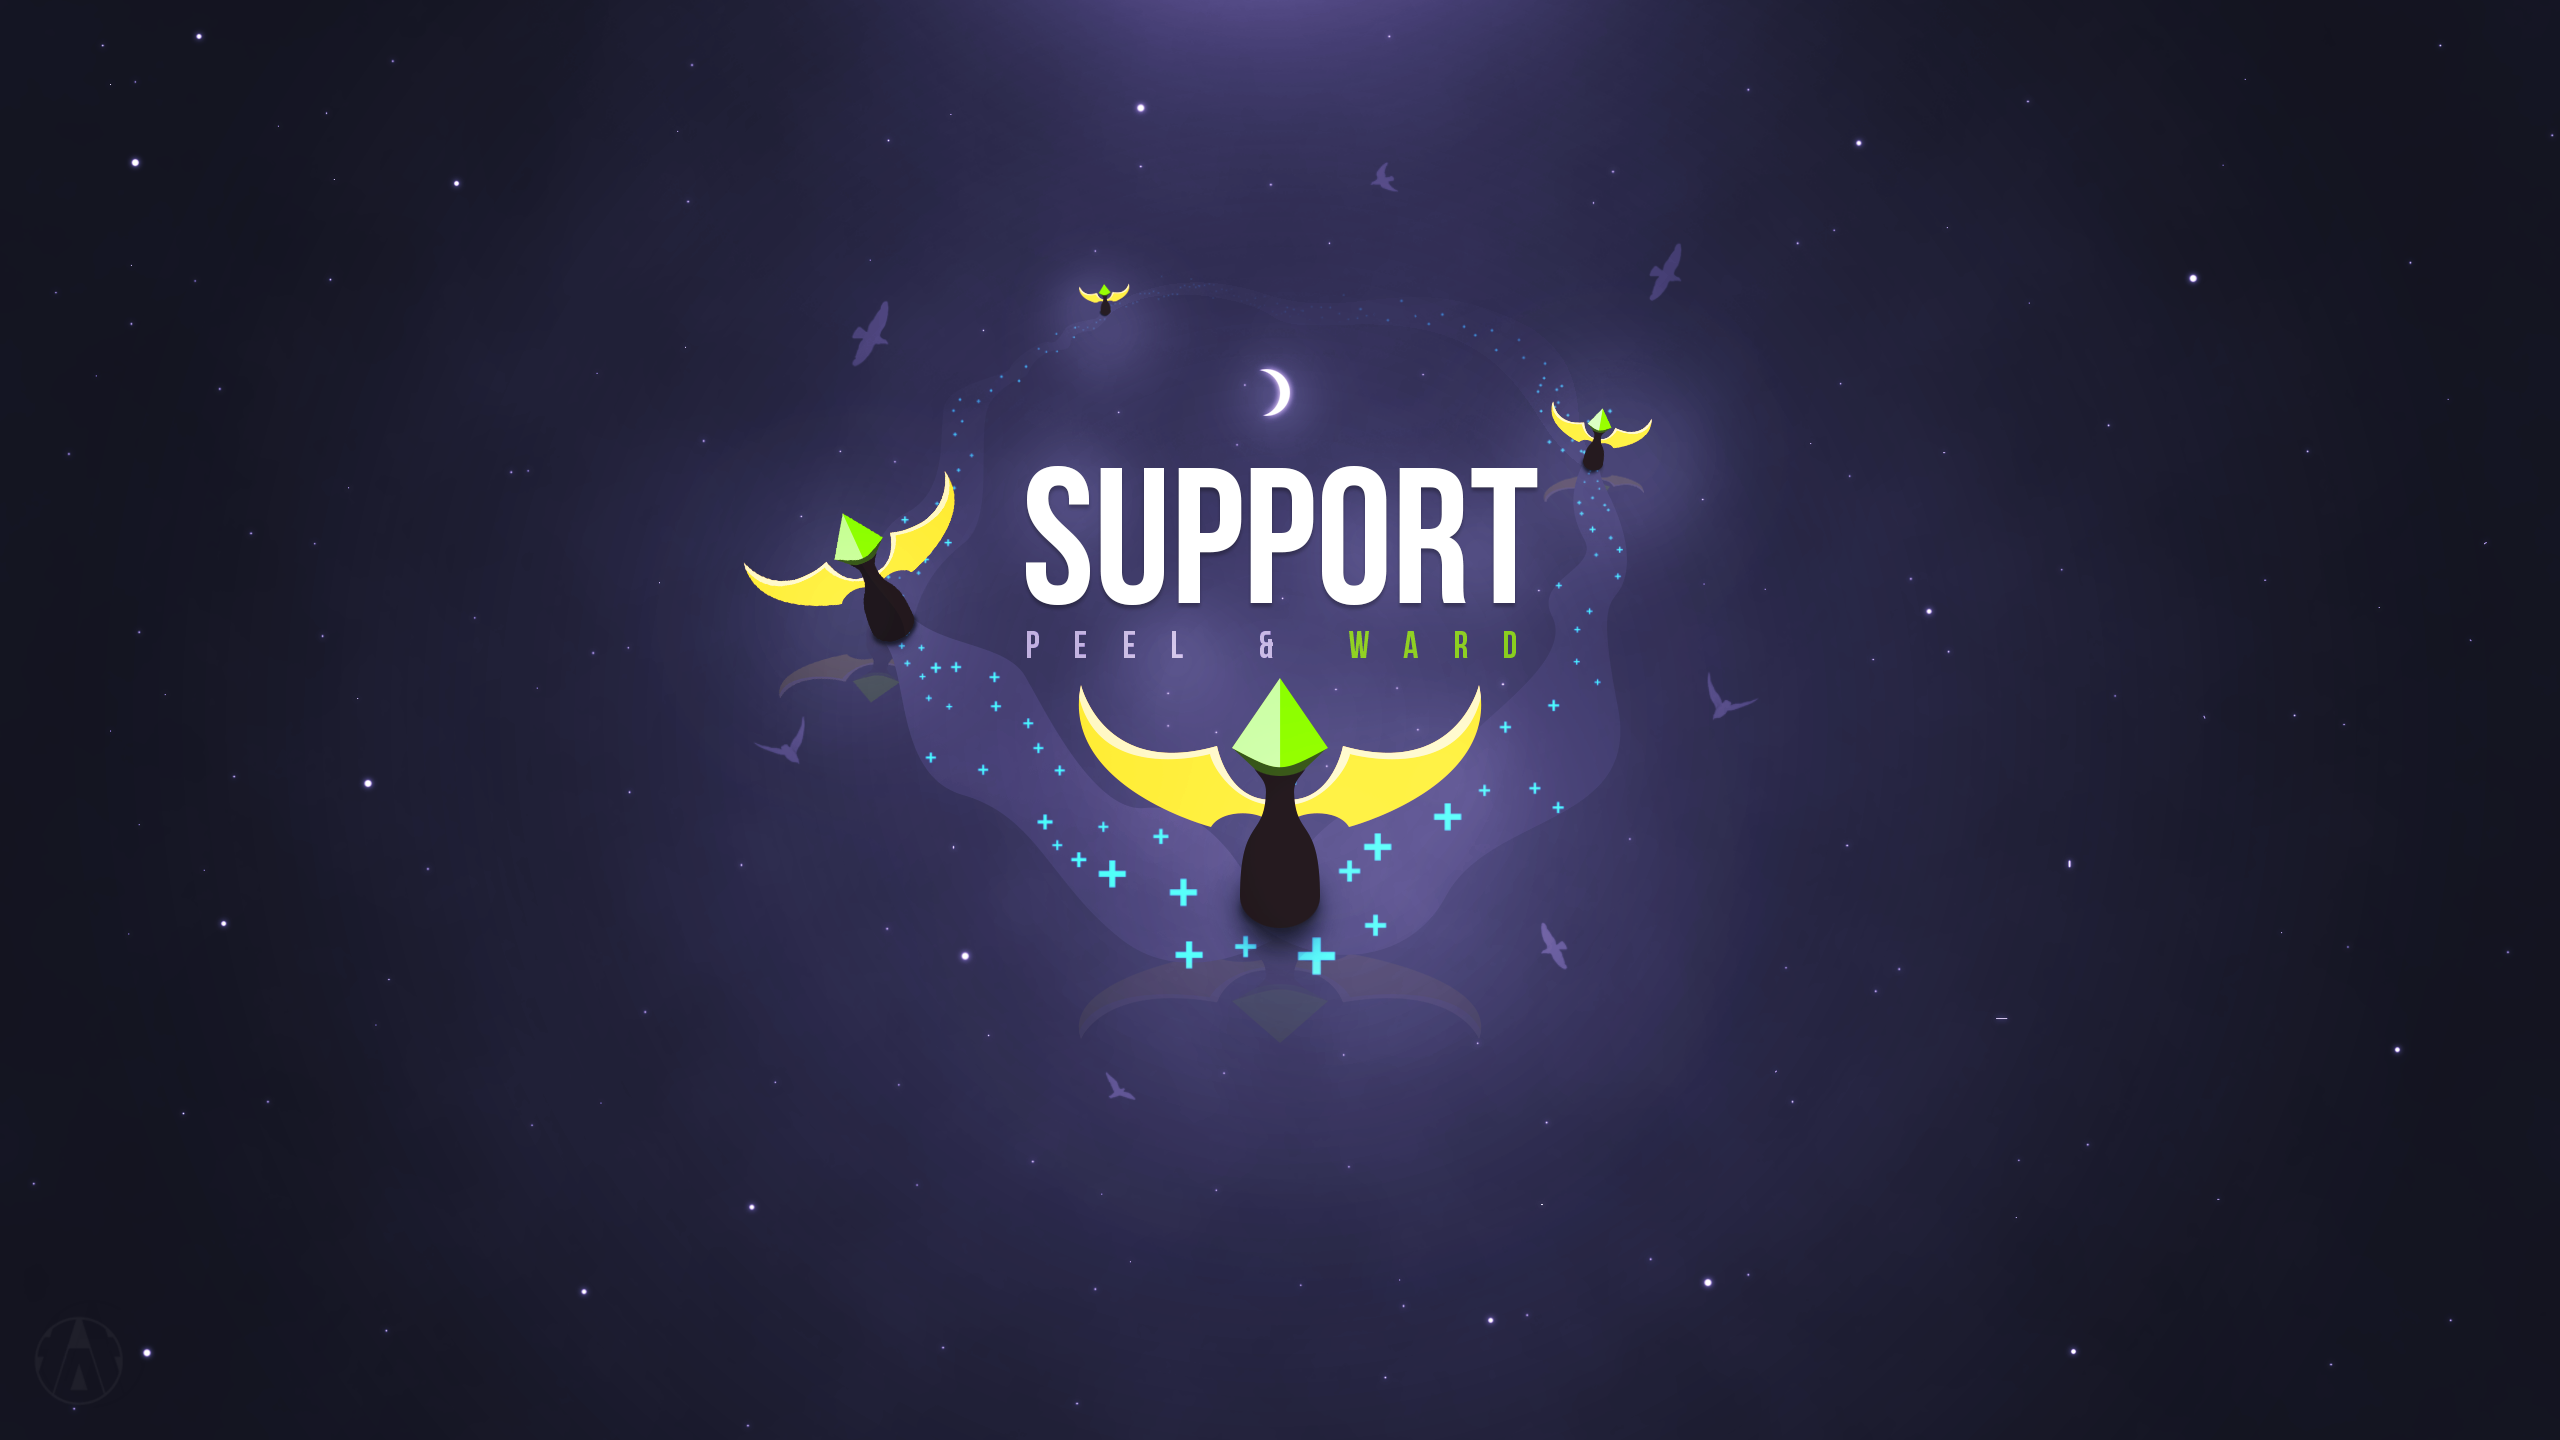 Support wallpaper